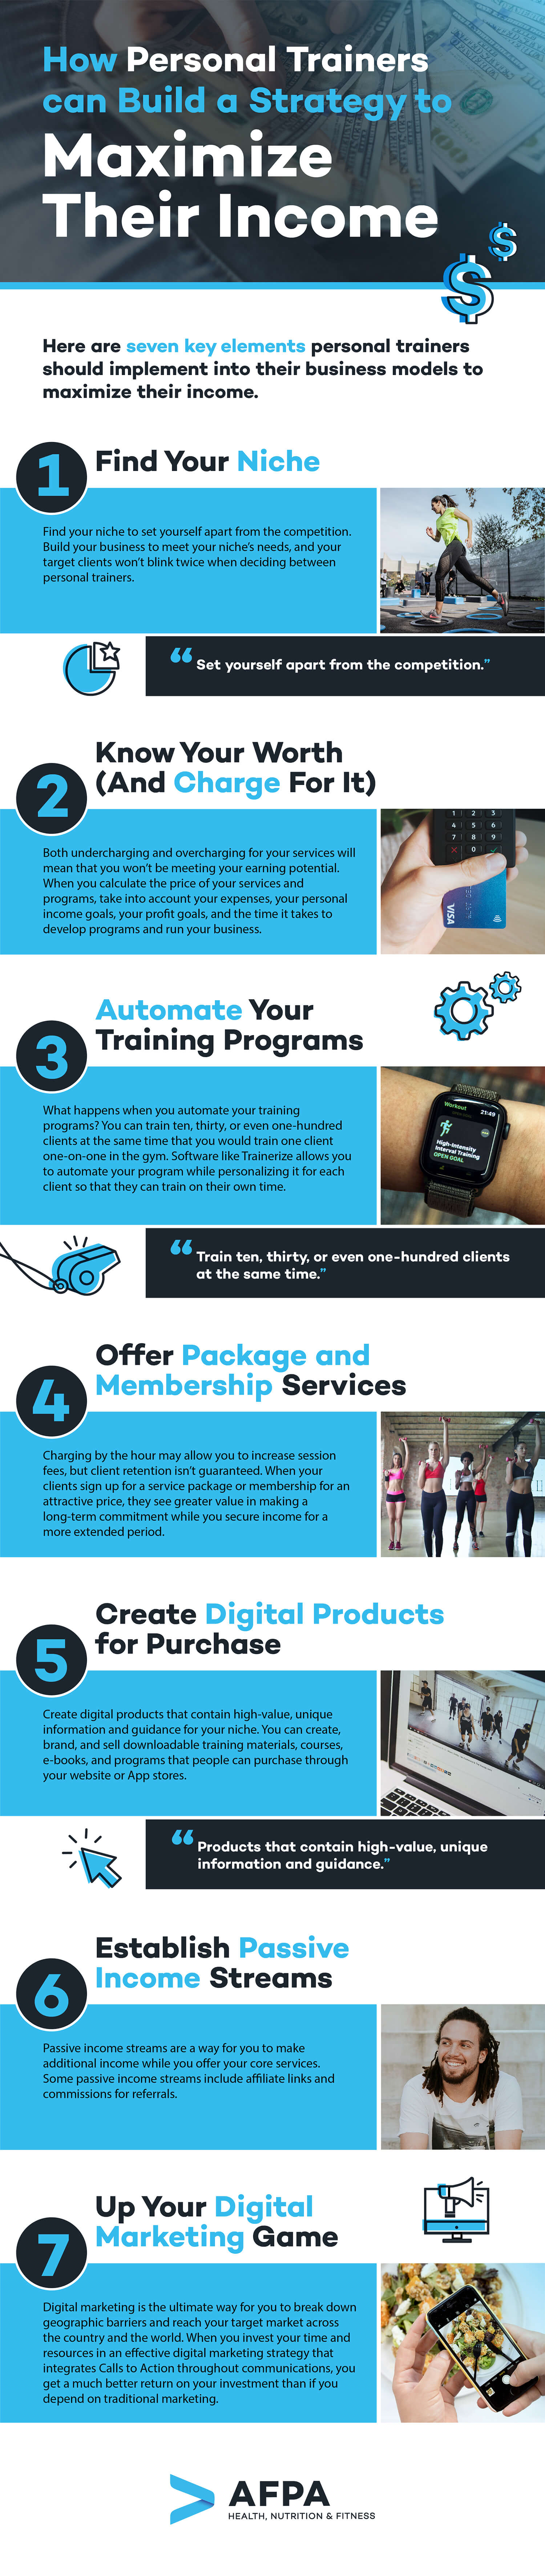 Strategy to Maximize Personal Training Income